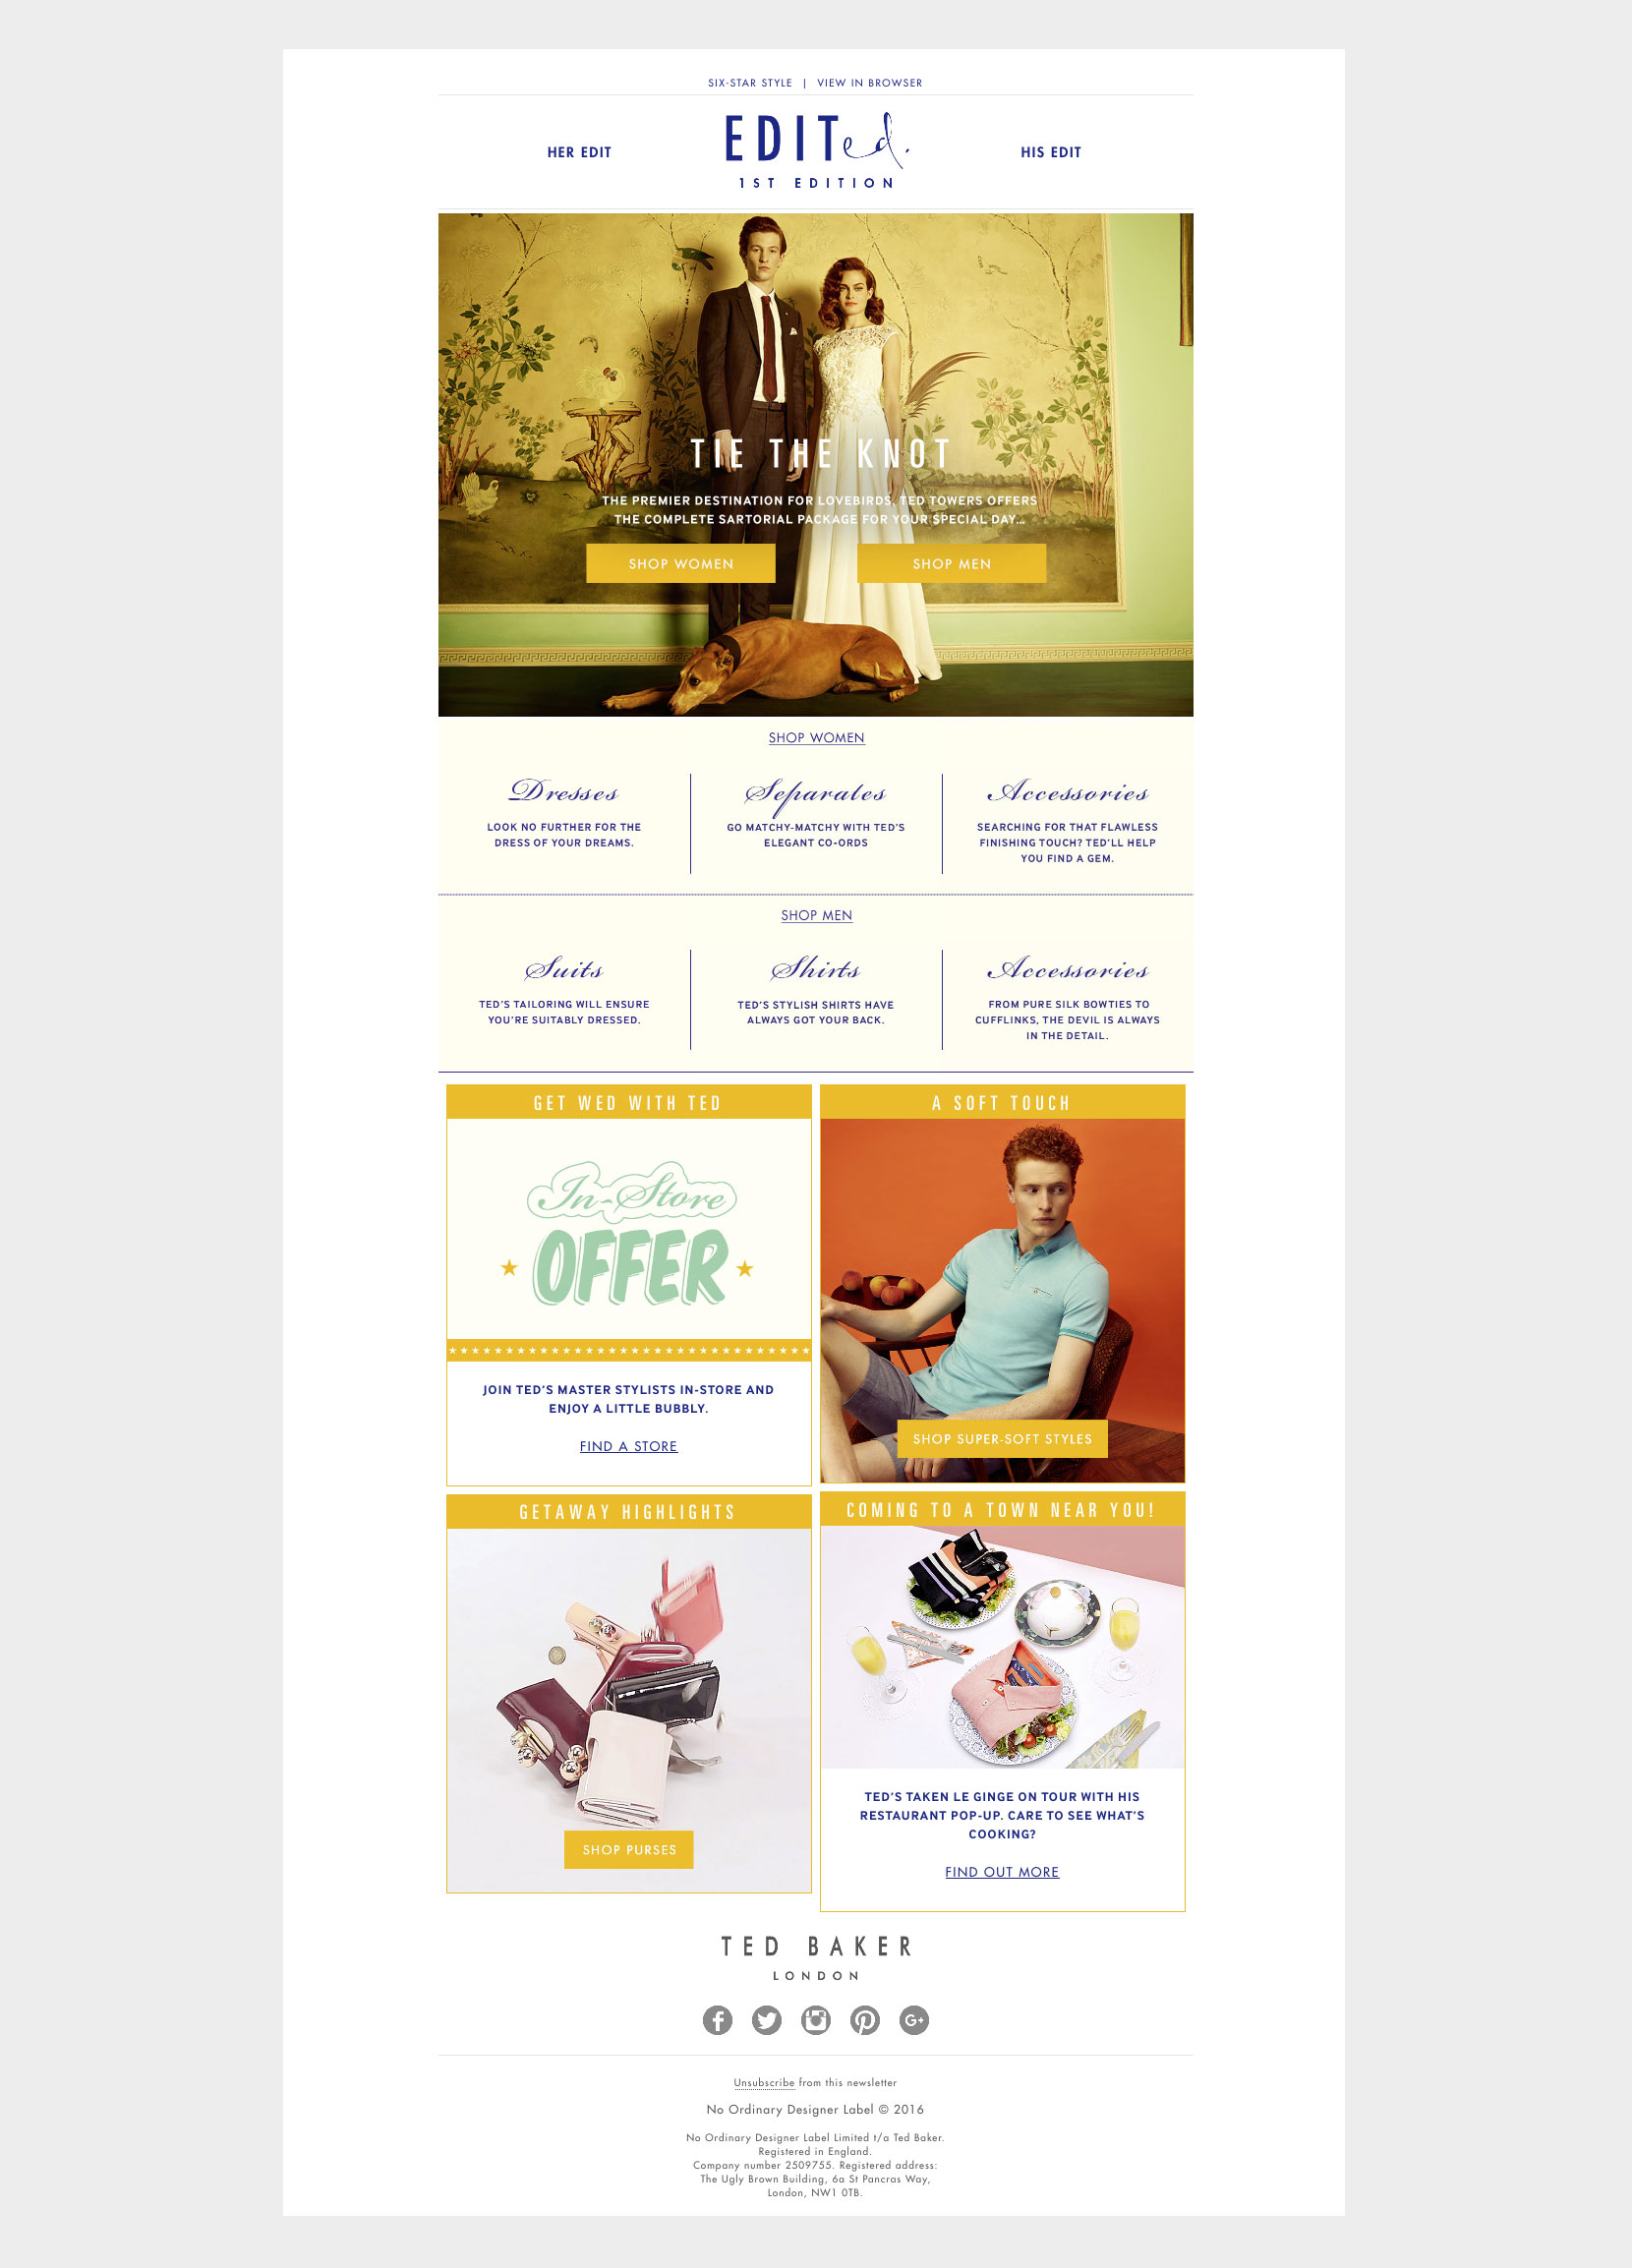 tedbaker-newsletter-edited